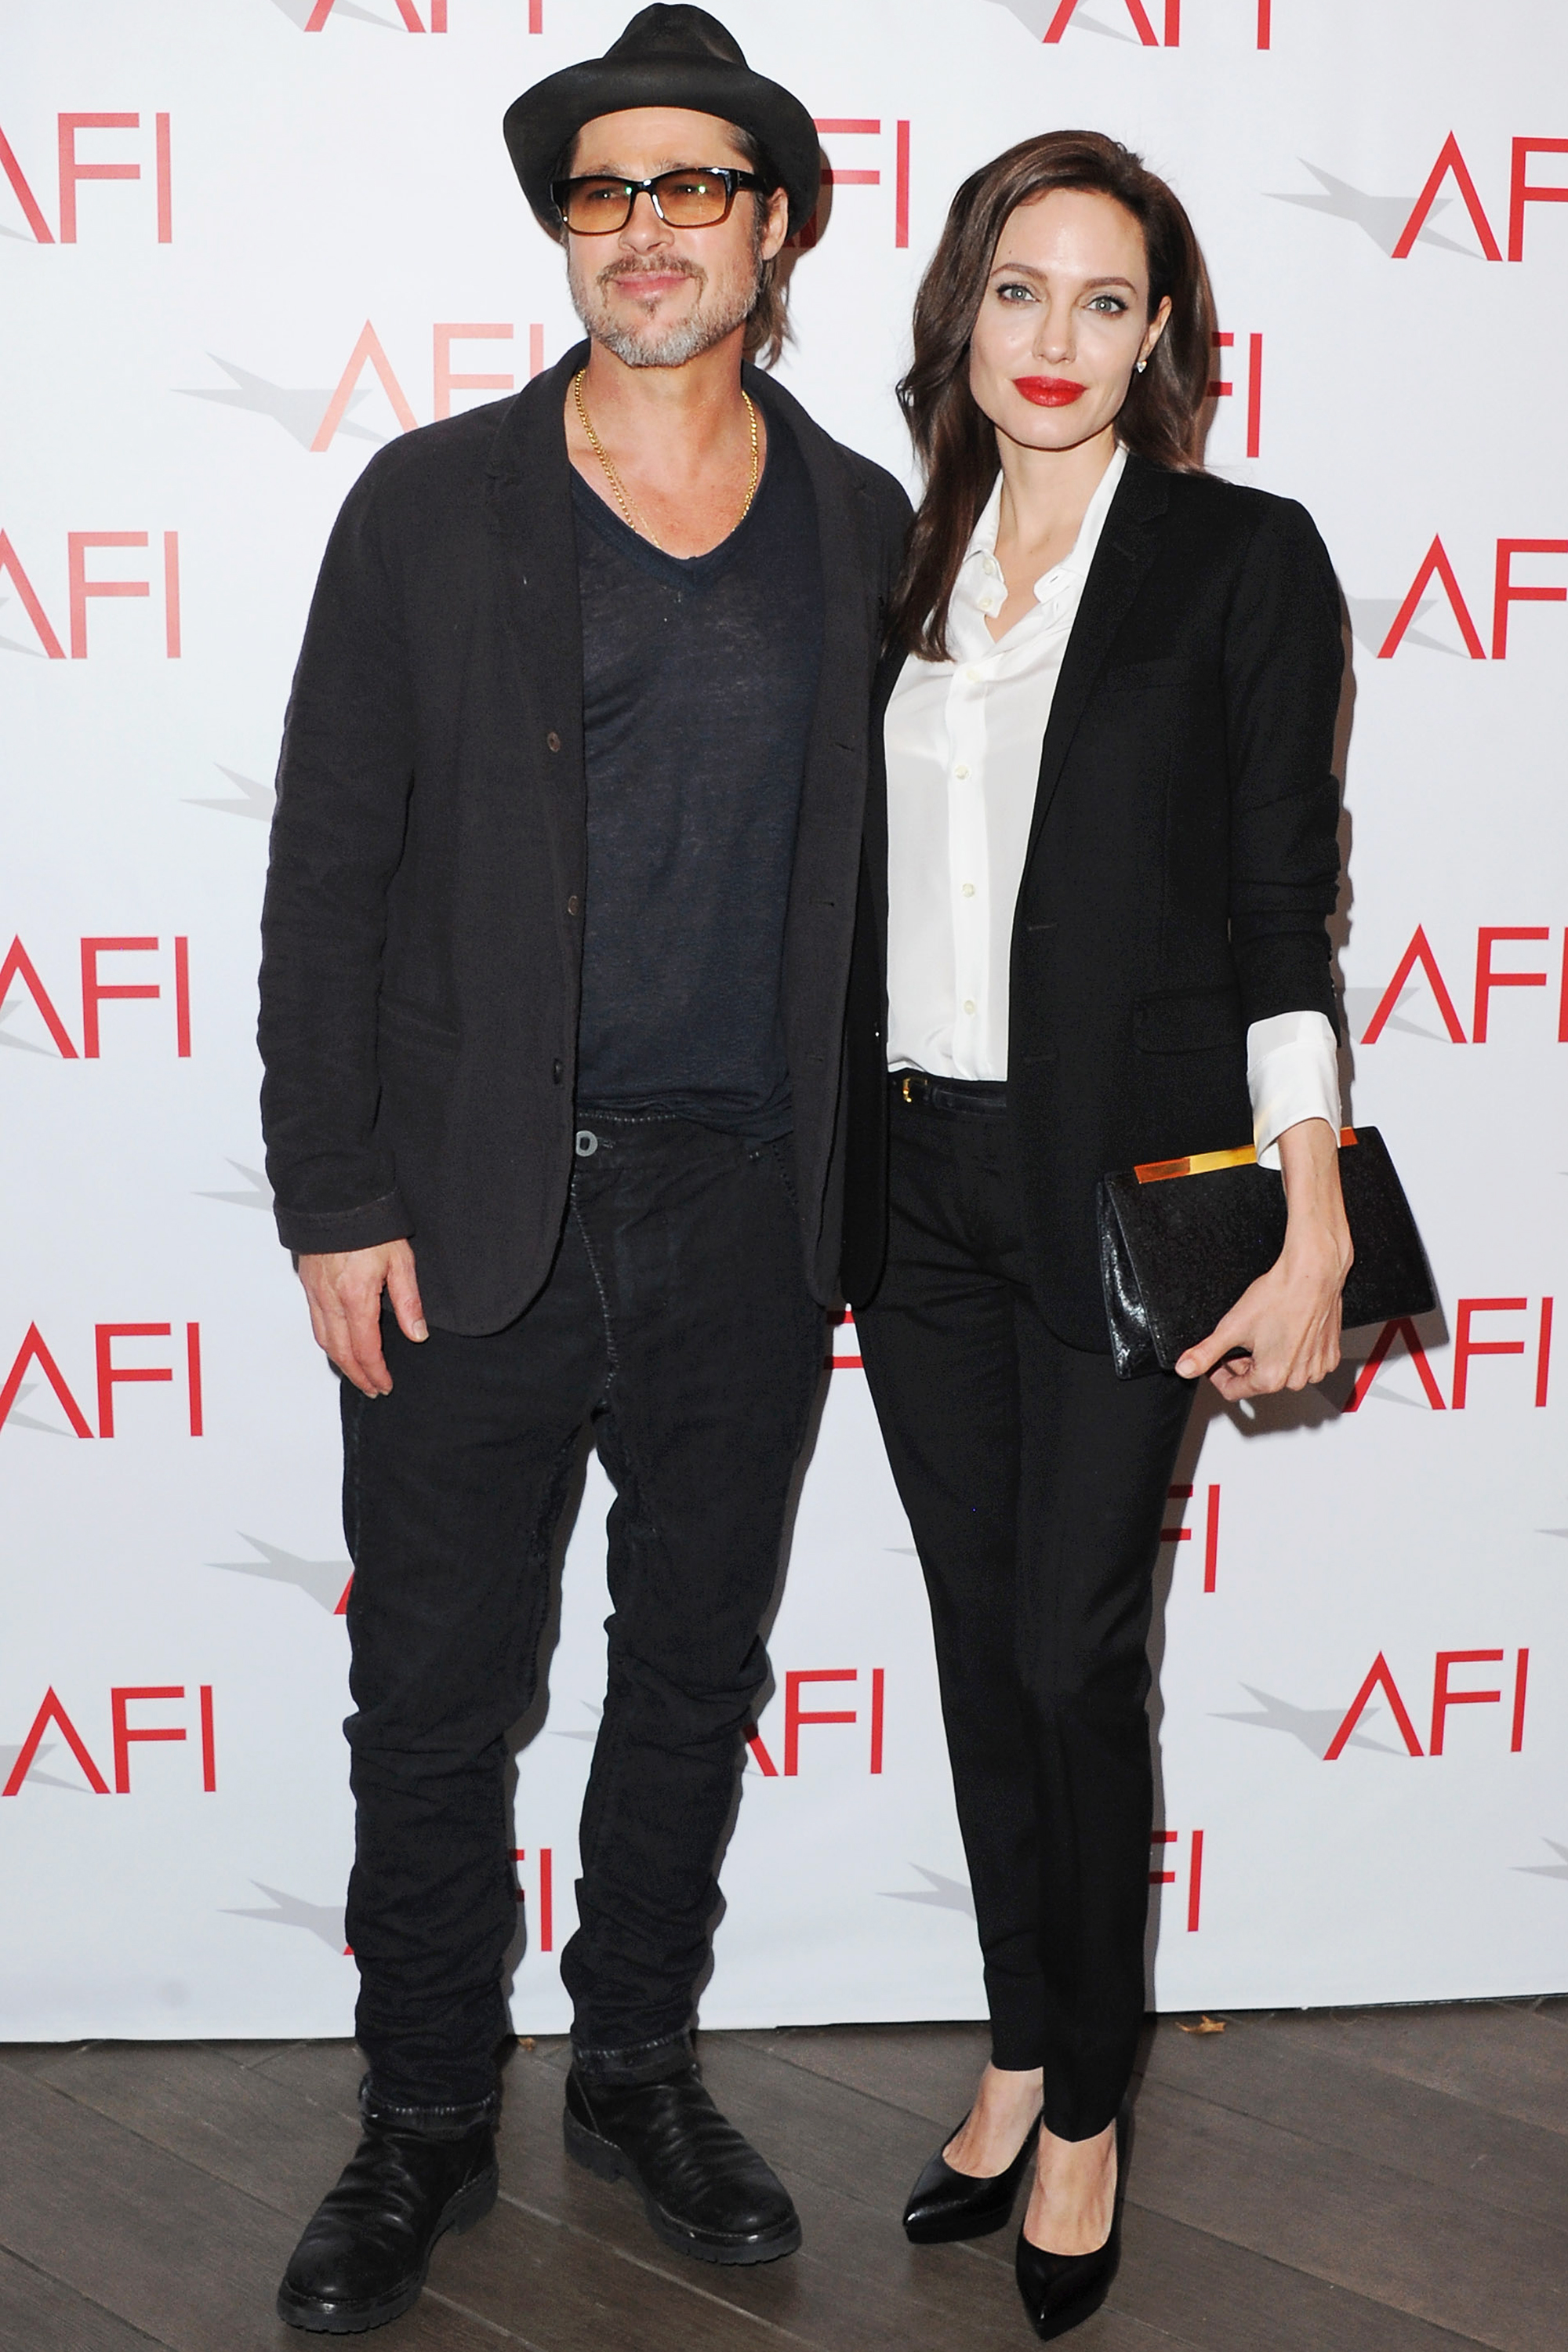 Brad Pitt and Angelina Jolie arrive at the 15th Annual AFI Awards on Jan. 9, 2015 in Beverly Hills, Calif.